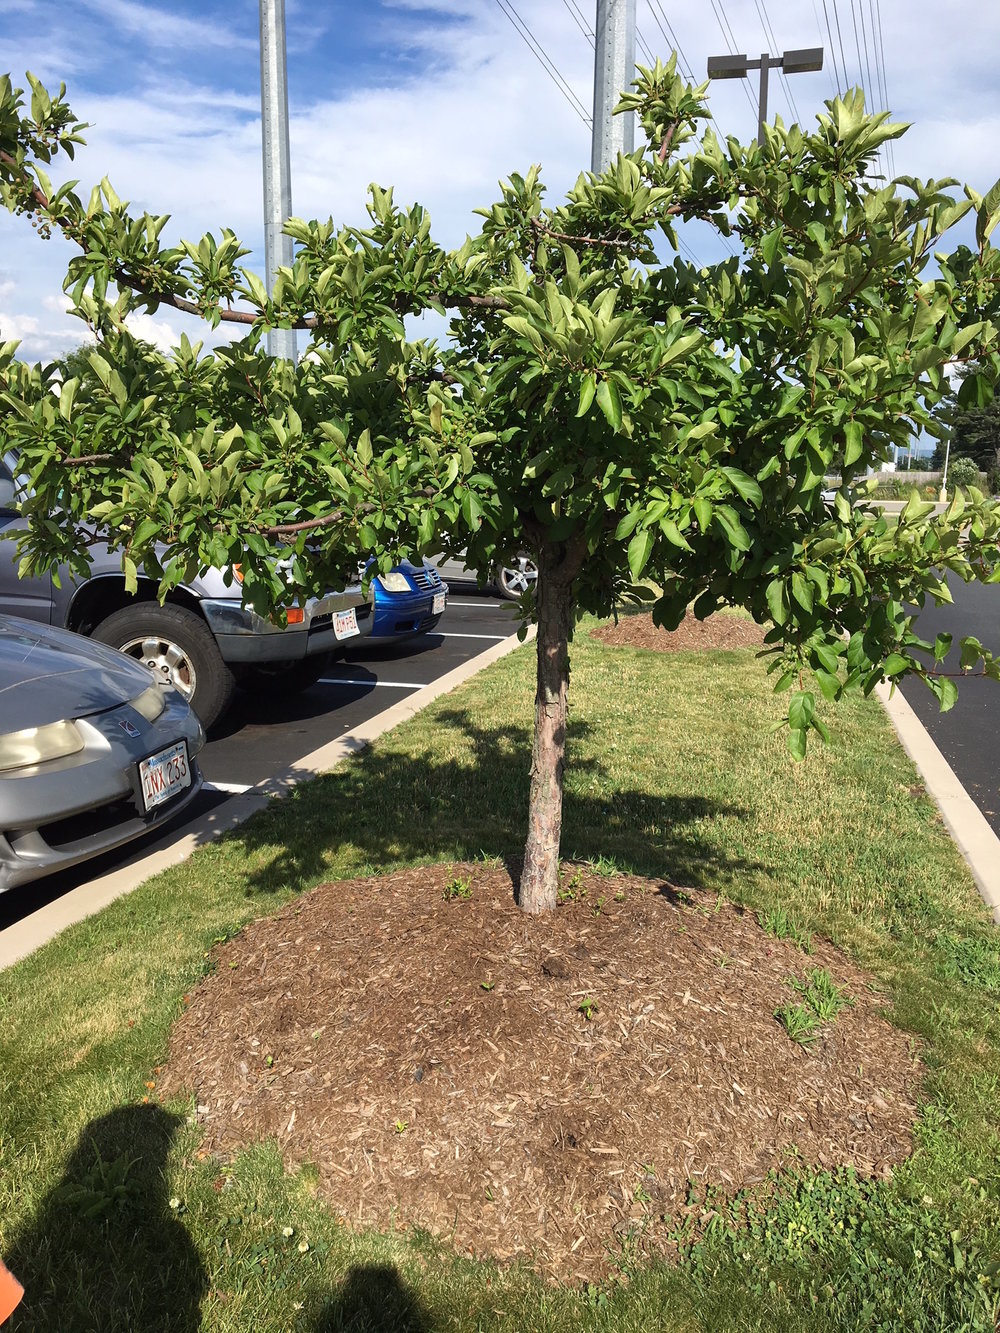 The Chicopee crabapple we previously dug out of the volcano mulch. Looks much better now (taken 2018), despite new volcano mulch added this spring.